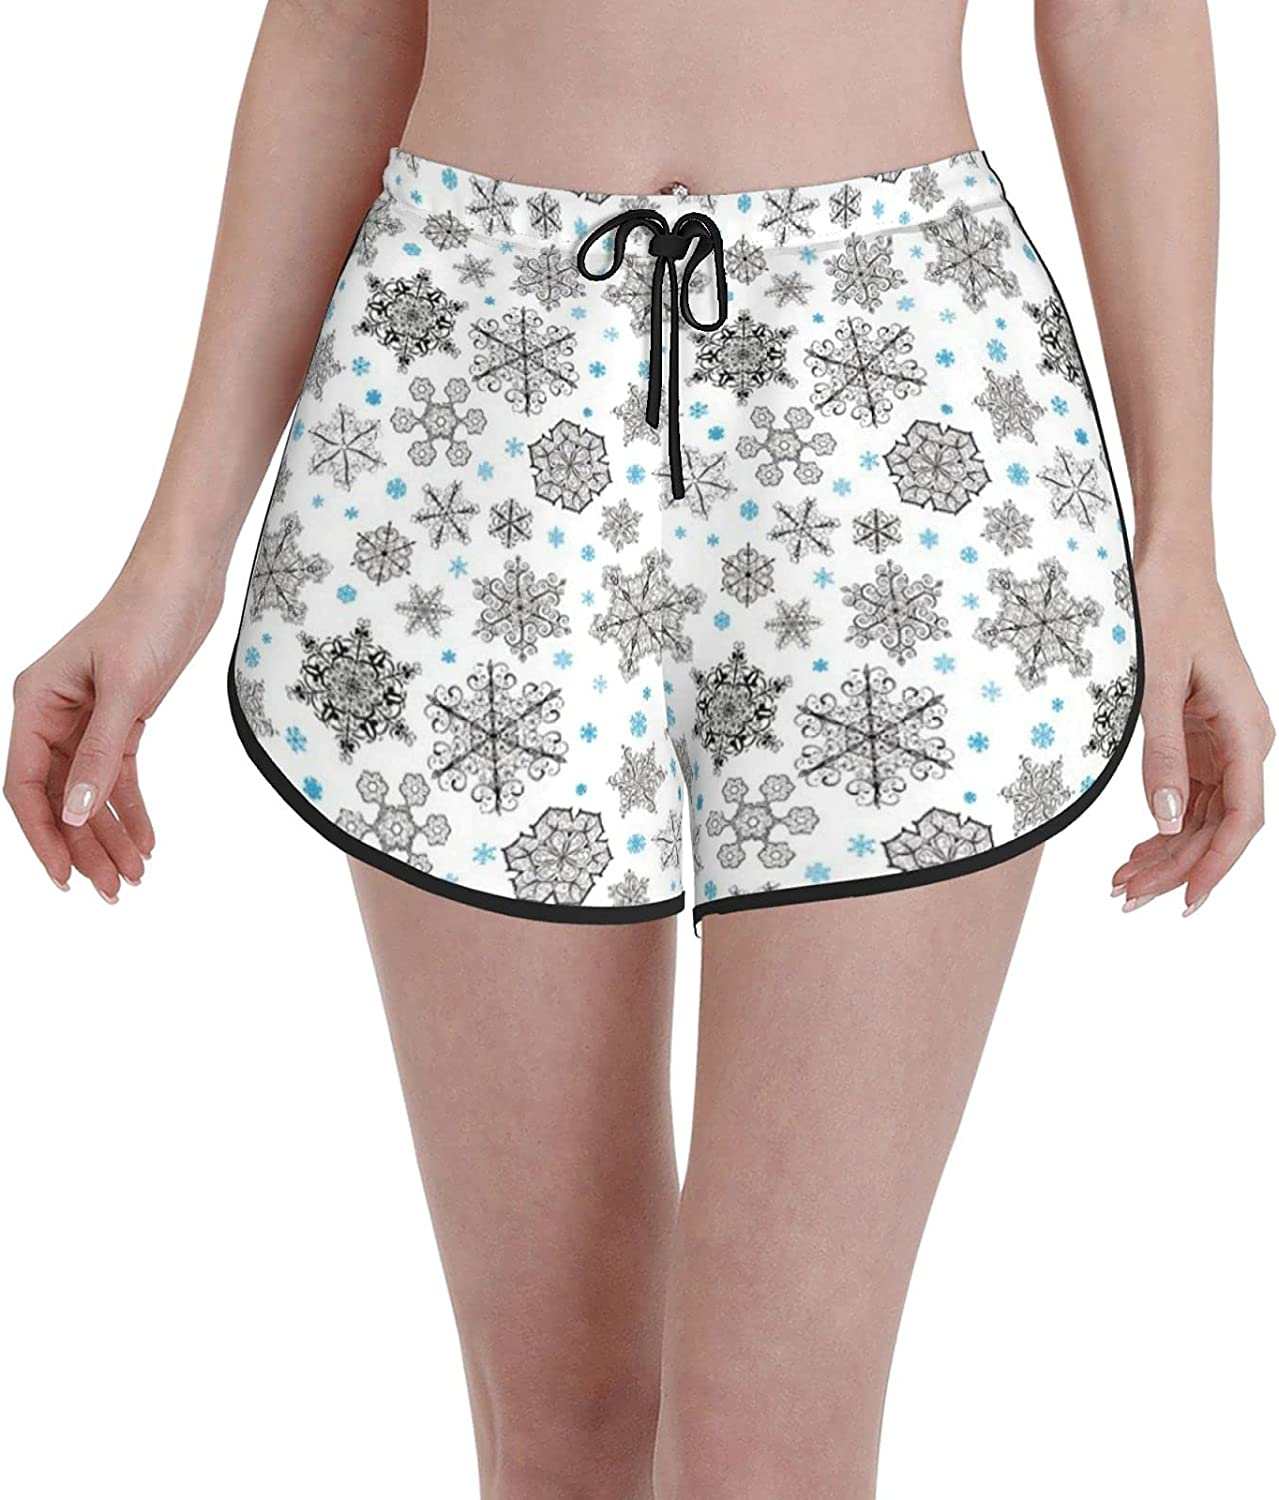 Comfortable Casual Max 73% OFF Board Shorts Sale price for Girls Bl Christmas Women Big